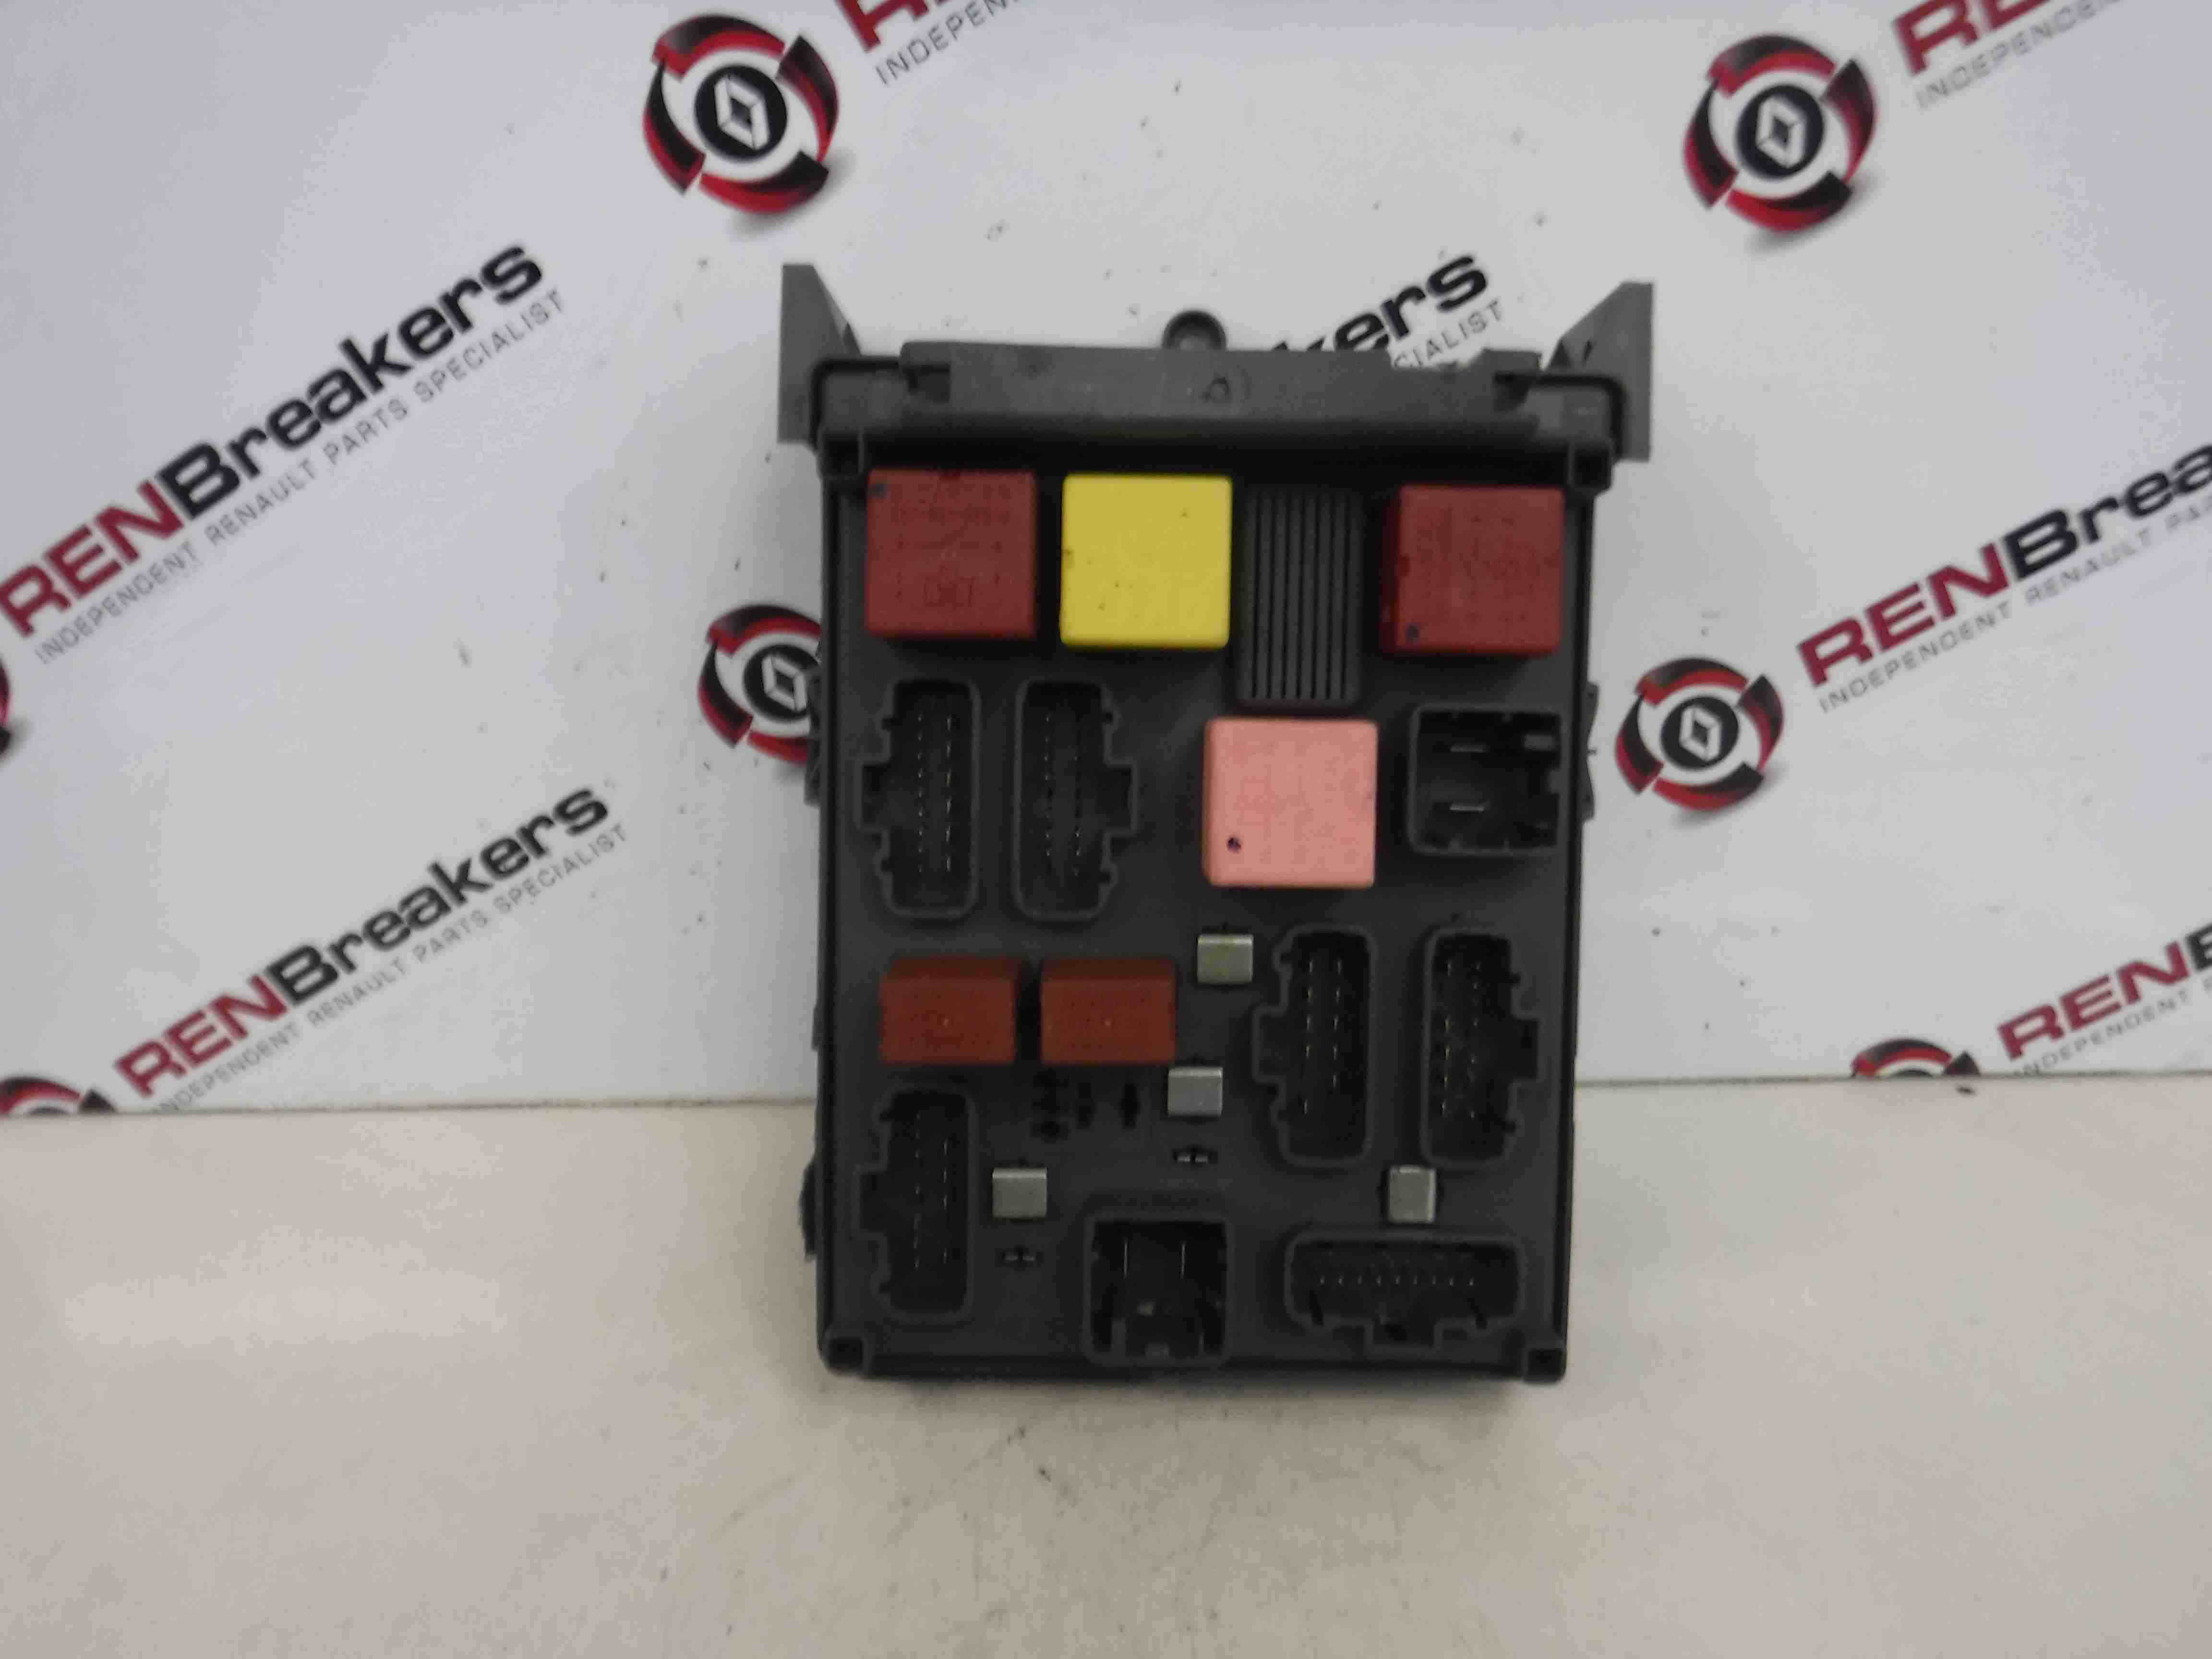 01 Toyota Sequoia Fuse Box Detailed Schematics Diagram 2001 Trailer Wiring 02 827200c010 Cat5 Network Cable Bmw 535i